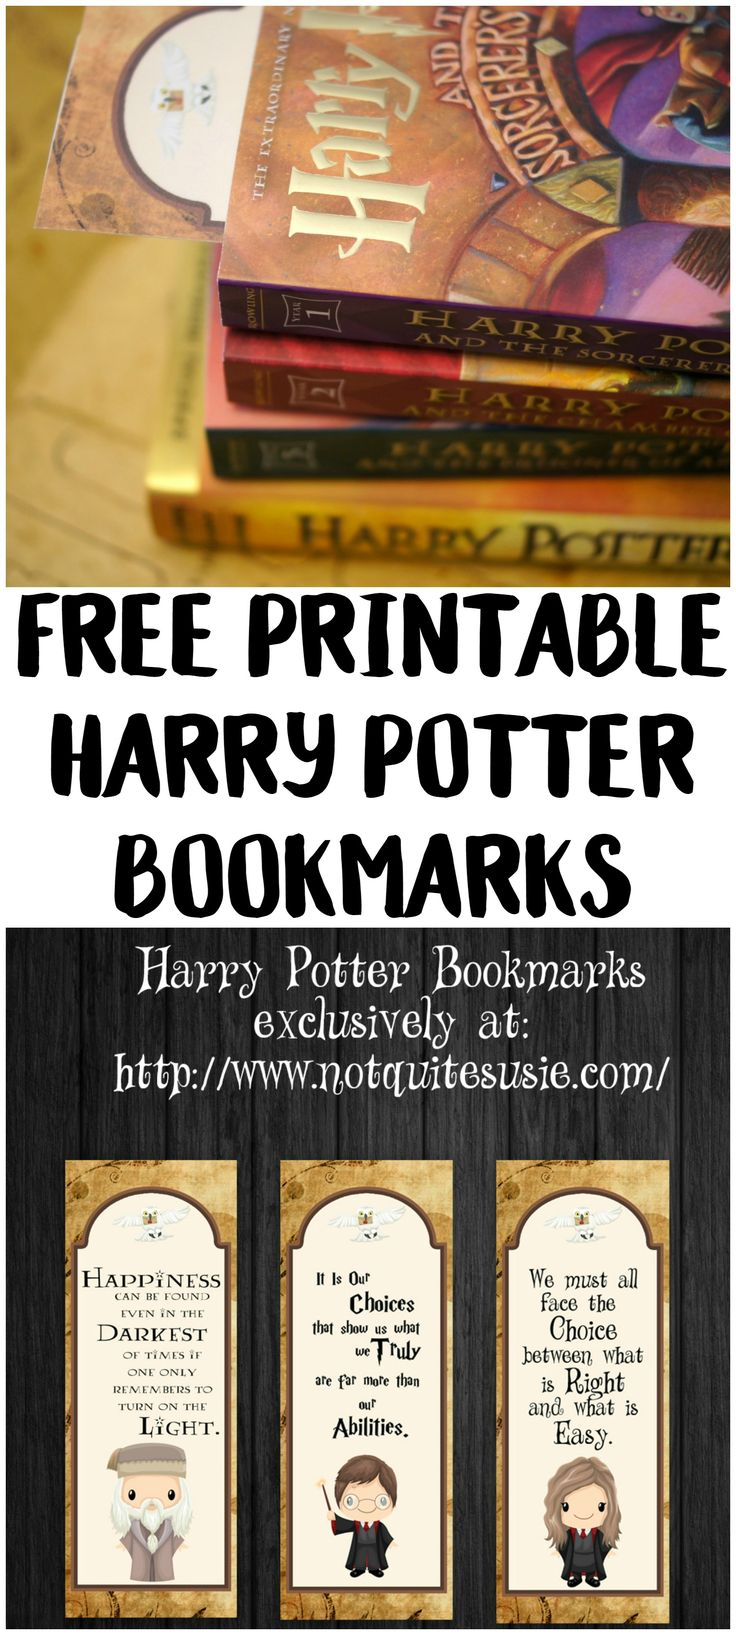 picture regarding Free Printable Harry Potter Bookmarks referred to as Cost-free Printable Harry Potter Bookmarks Not Very Susie